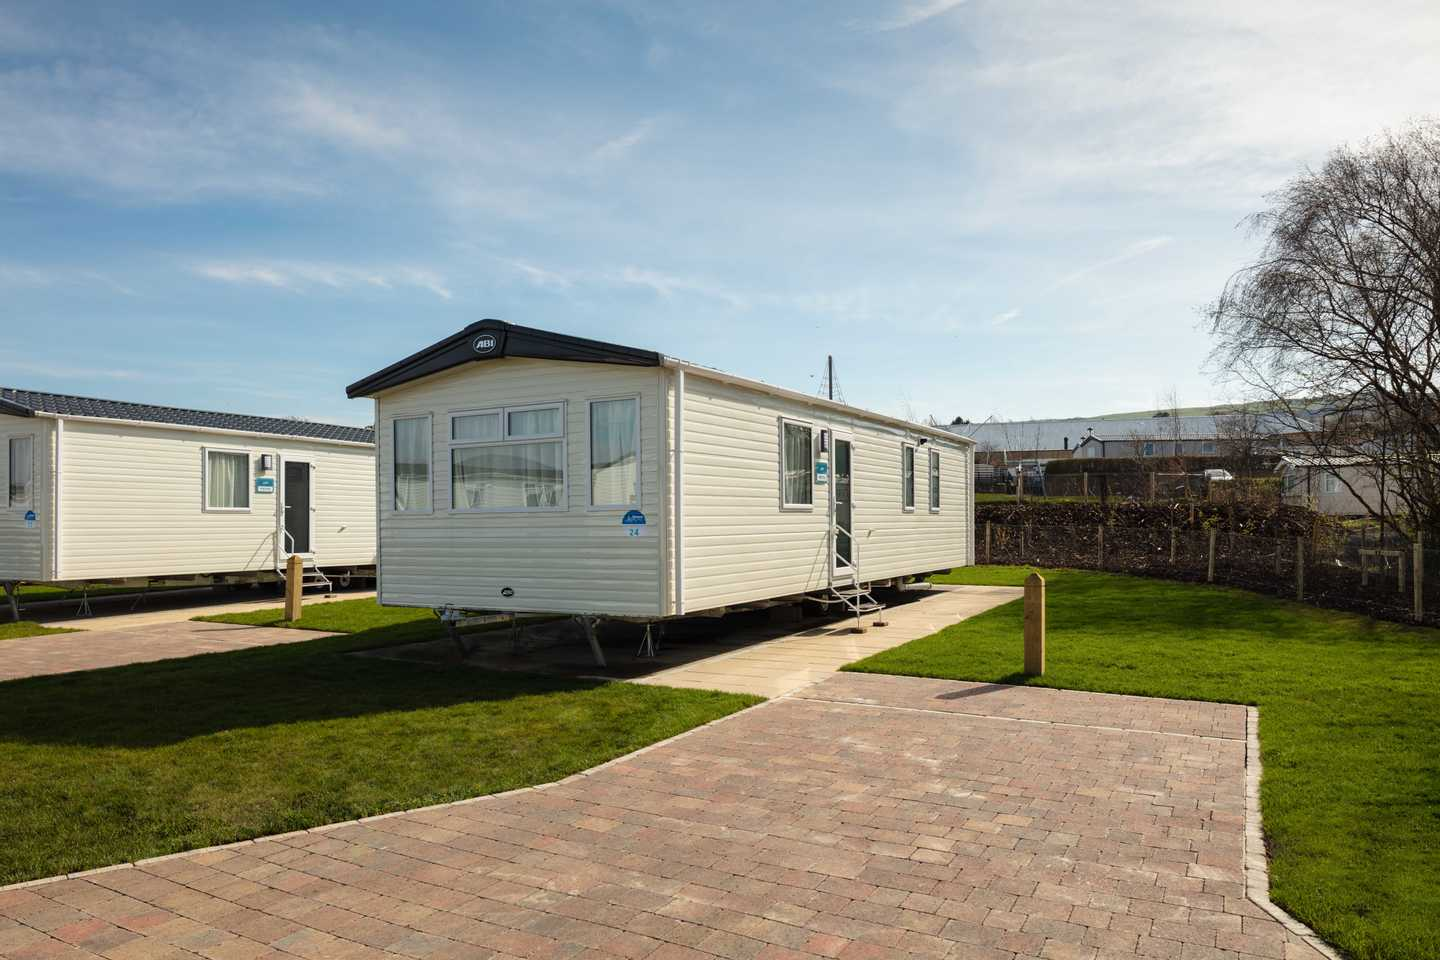 New Prestige caravan with parking space beside